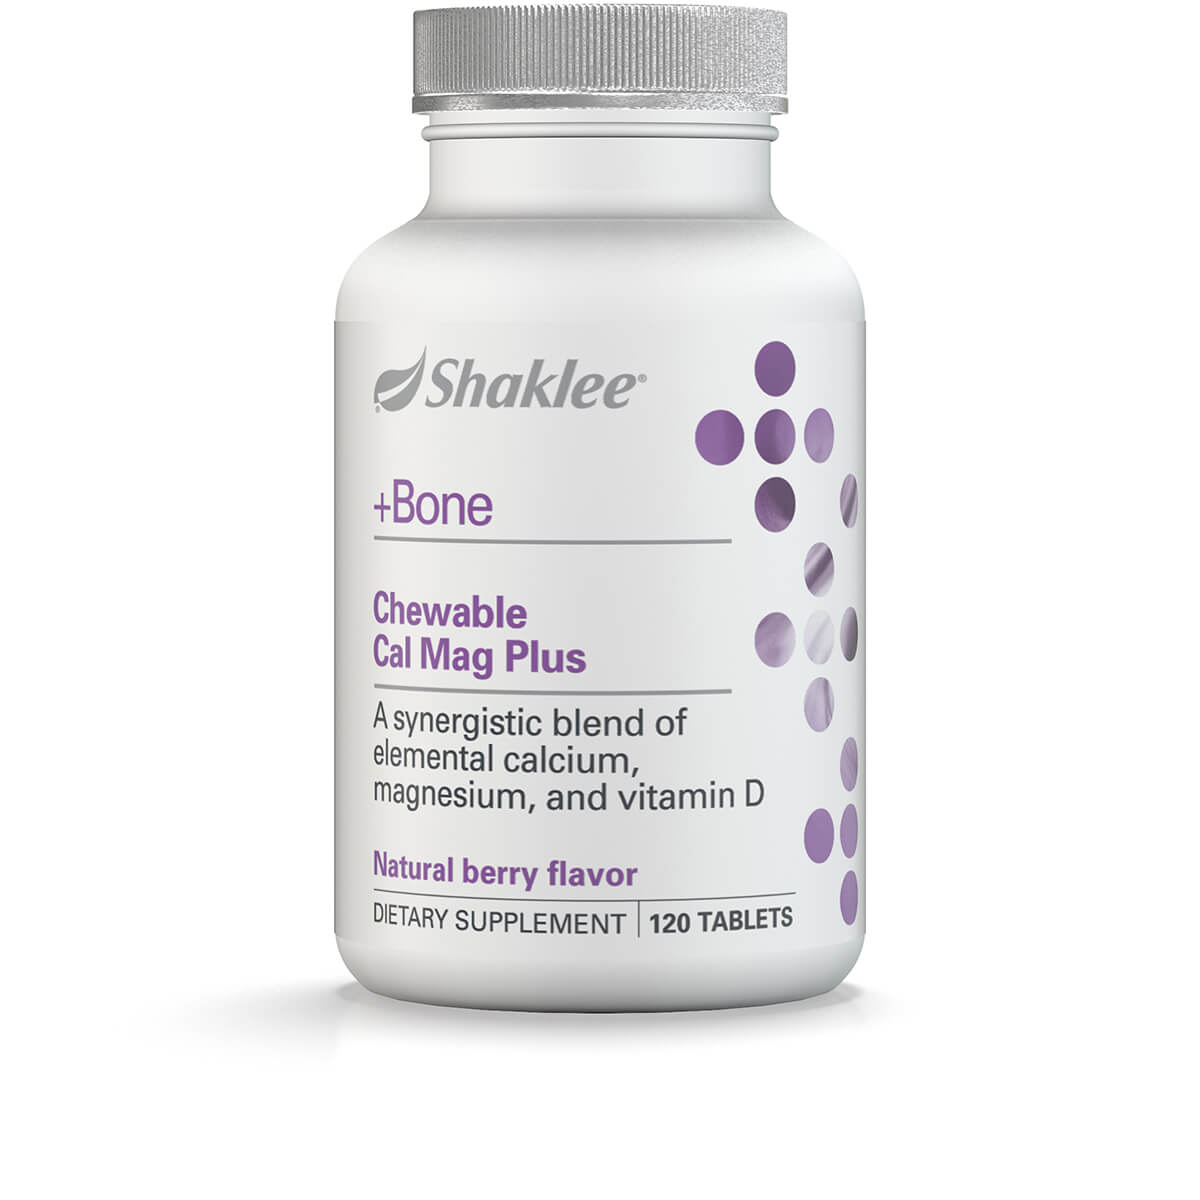 Shaklee Chewable Calcium